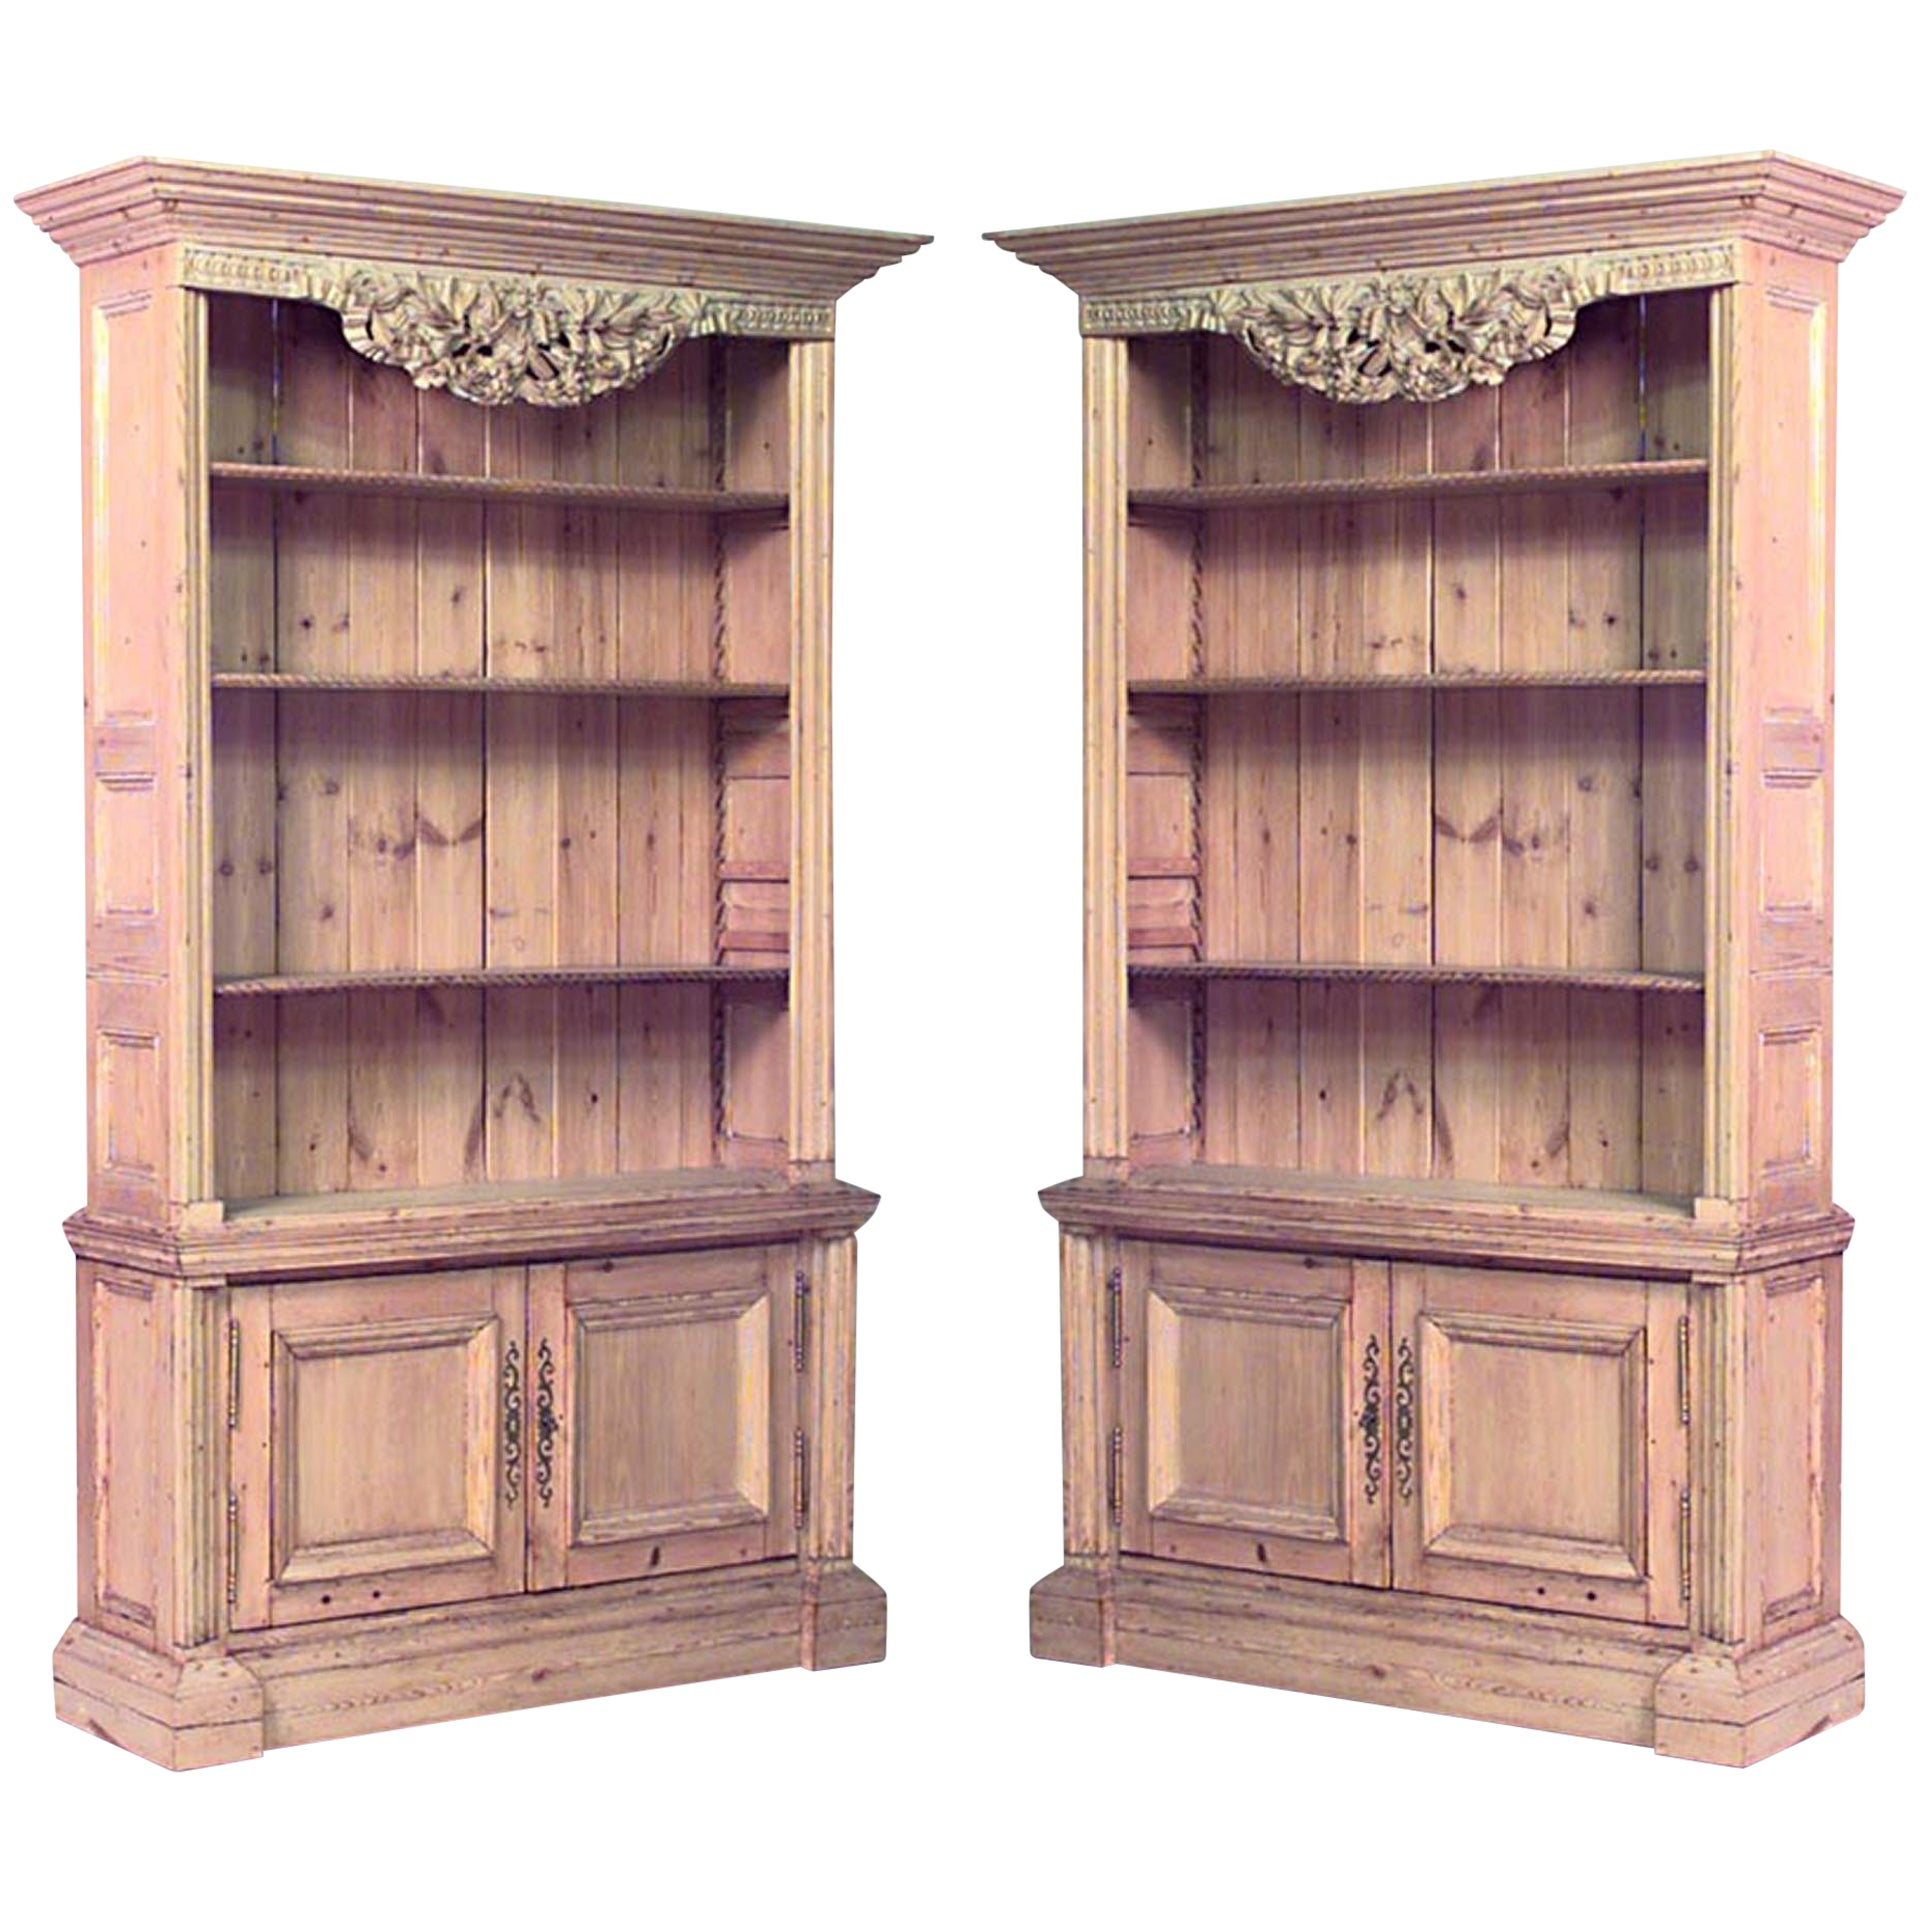 Pair of 19th Century English Country Stripped Pine Bookcase Cabinets